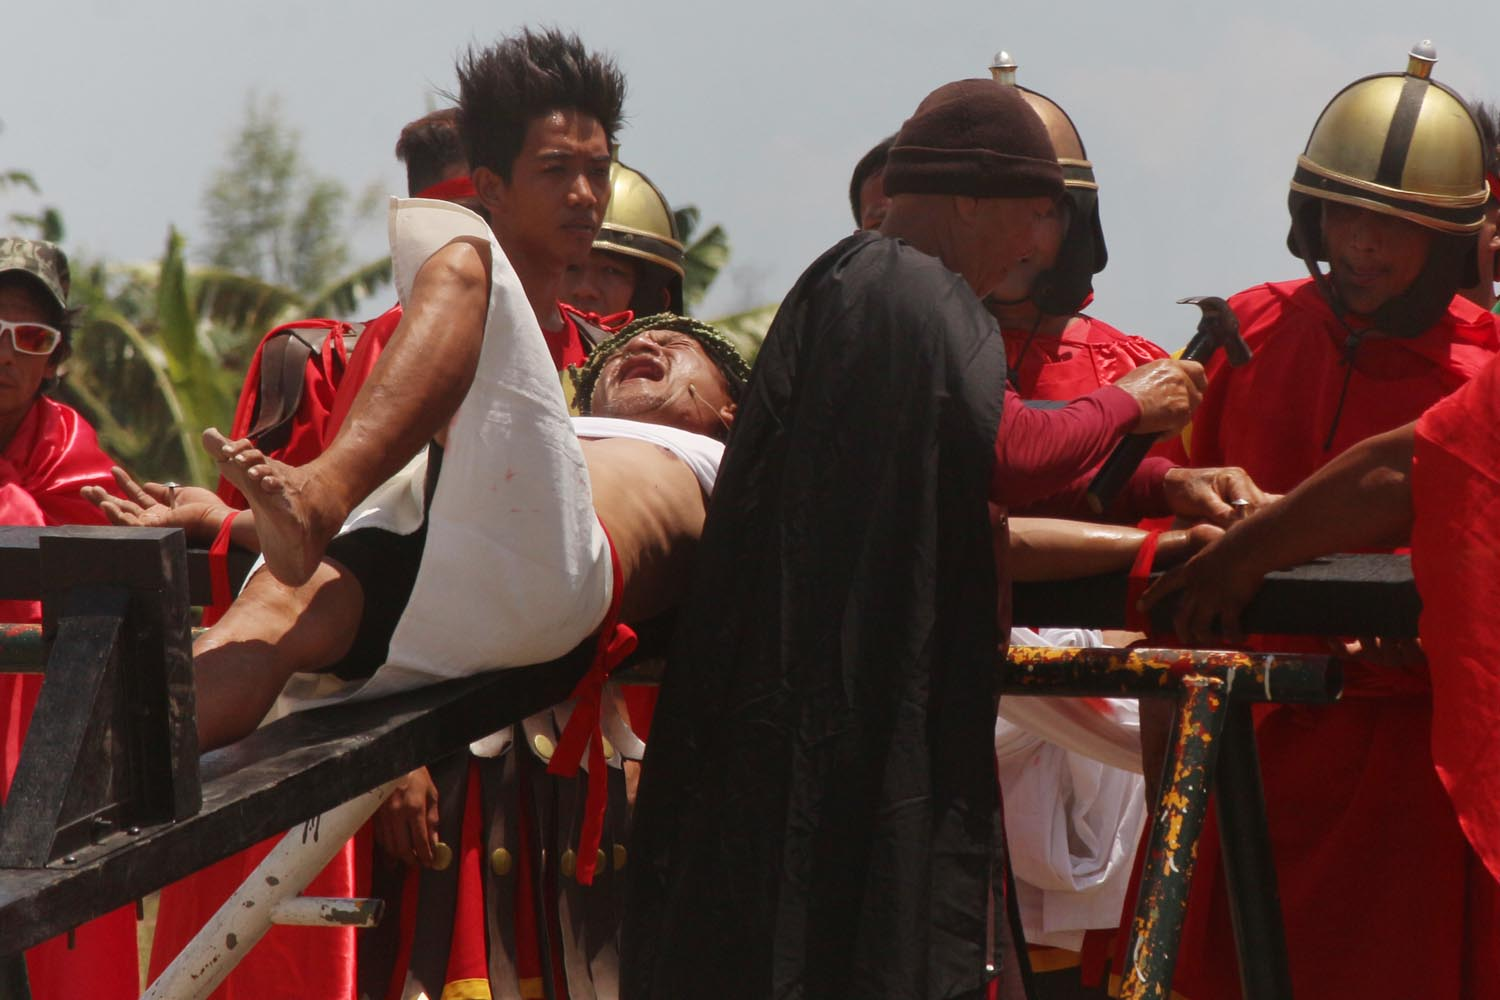 CHRIST'S SUFFERING. Ruben Enaje grimaces as he is nailed to the cross for the 31st time. Photo by Darren Langit